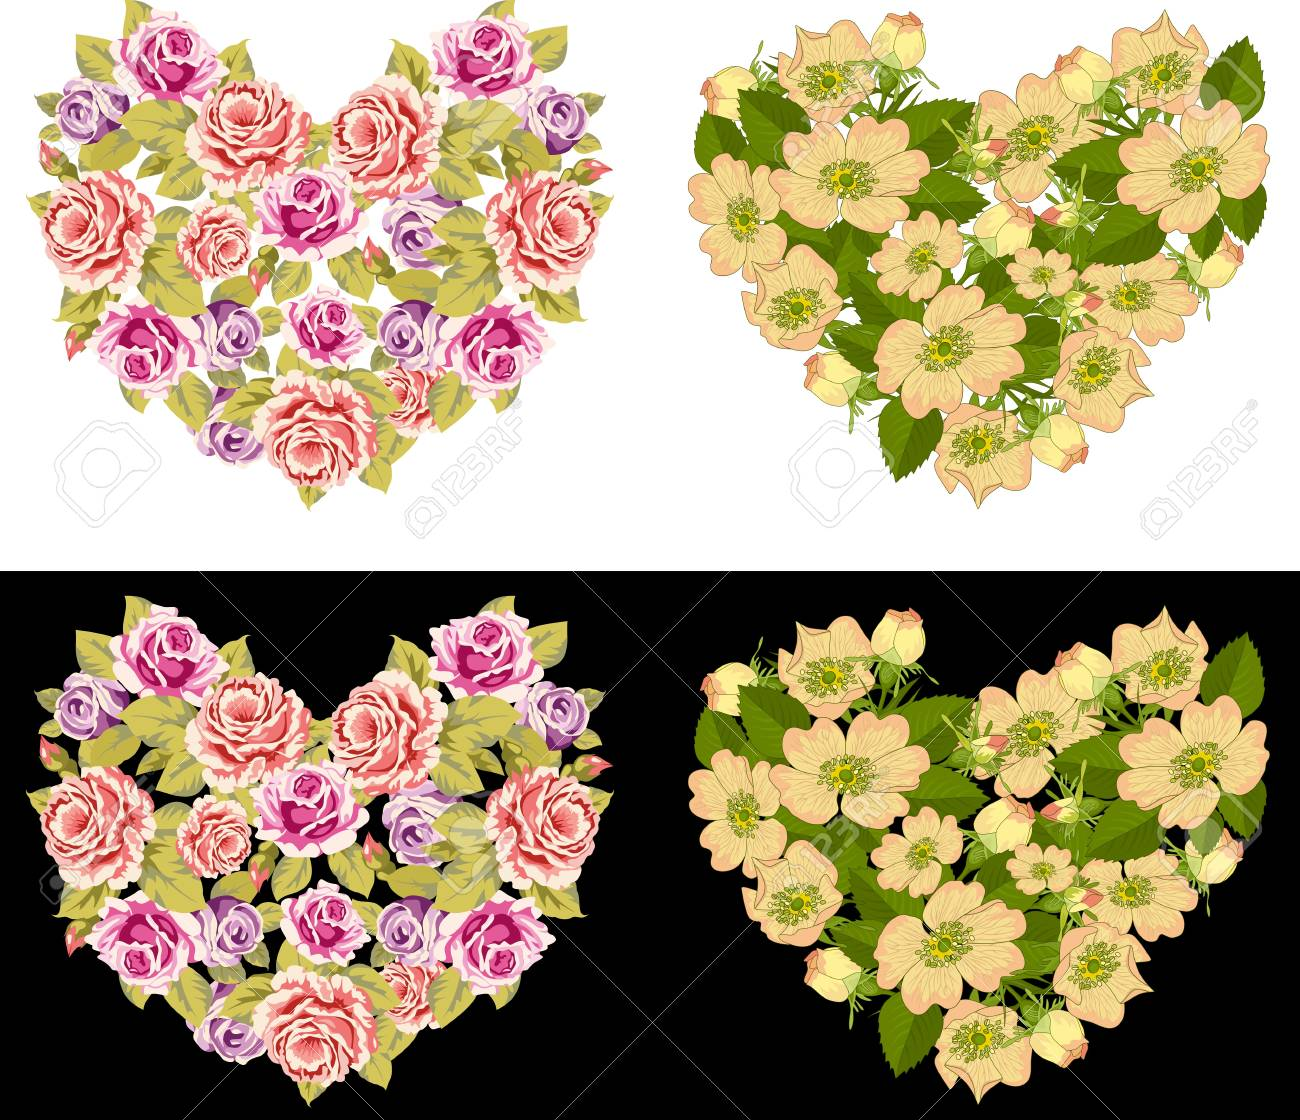 Two different heart  made of roses on a white and black background Stock Vector - 13383455